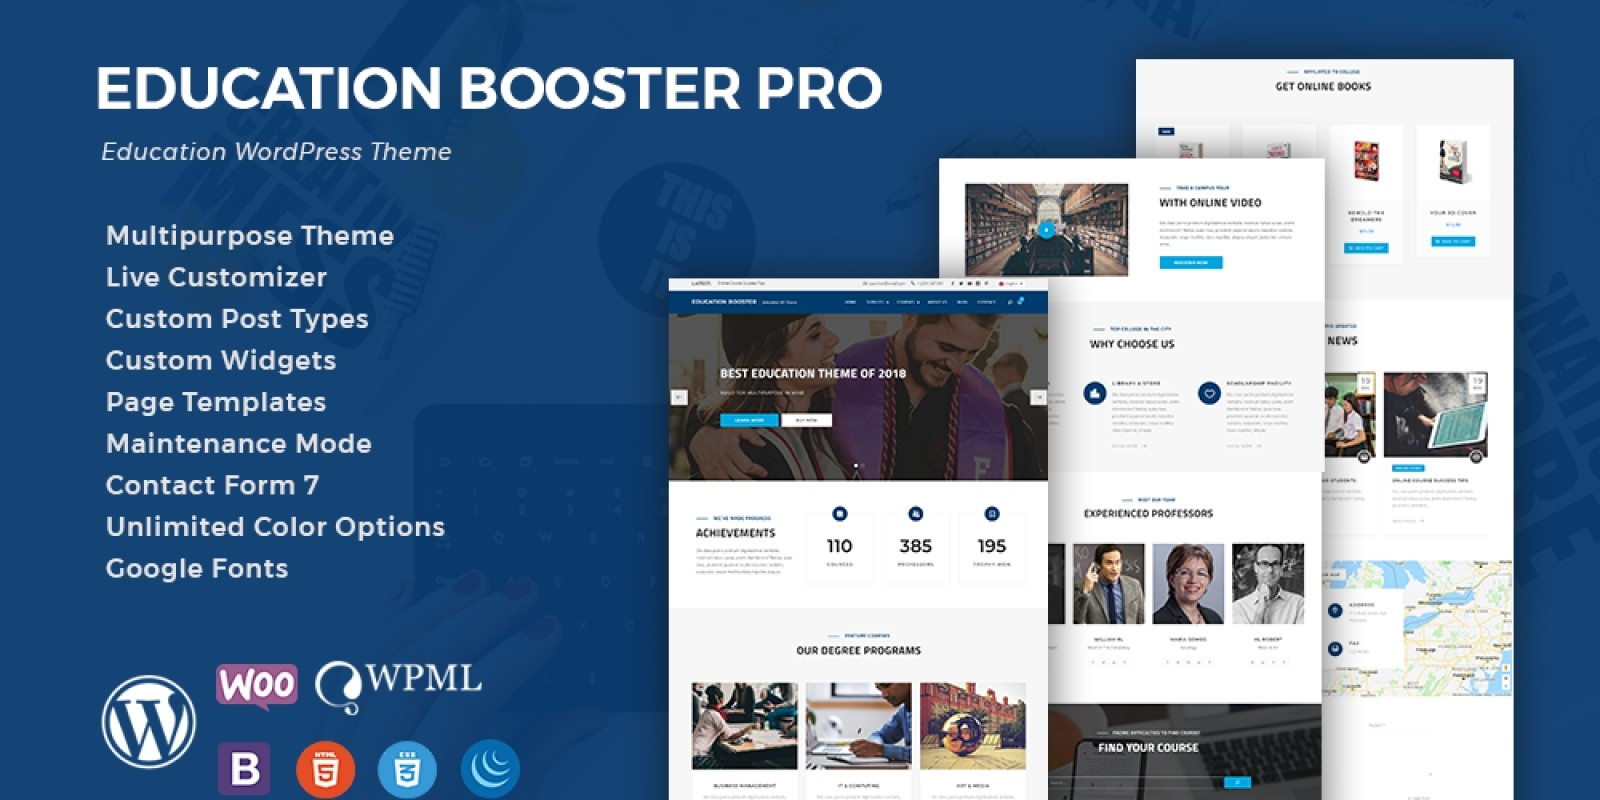 Education Booster Pro - an education theme